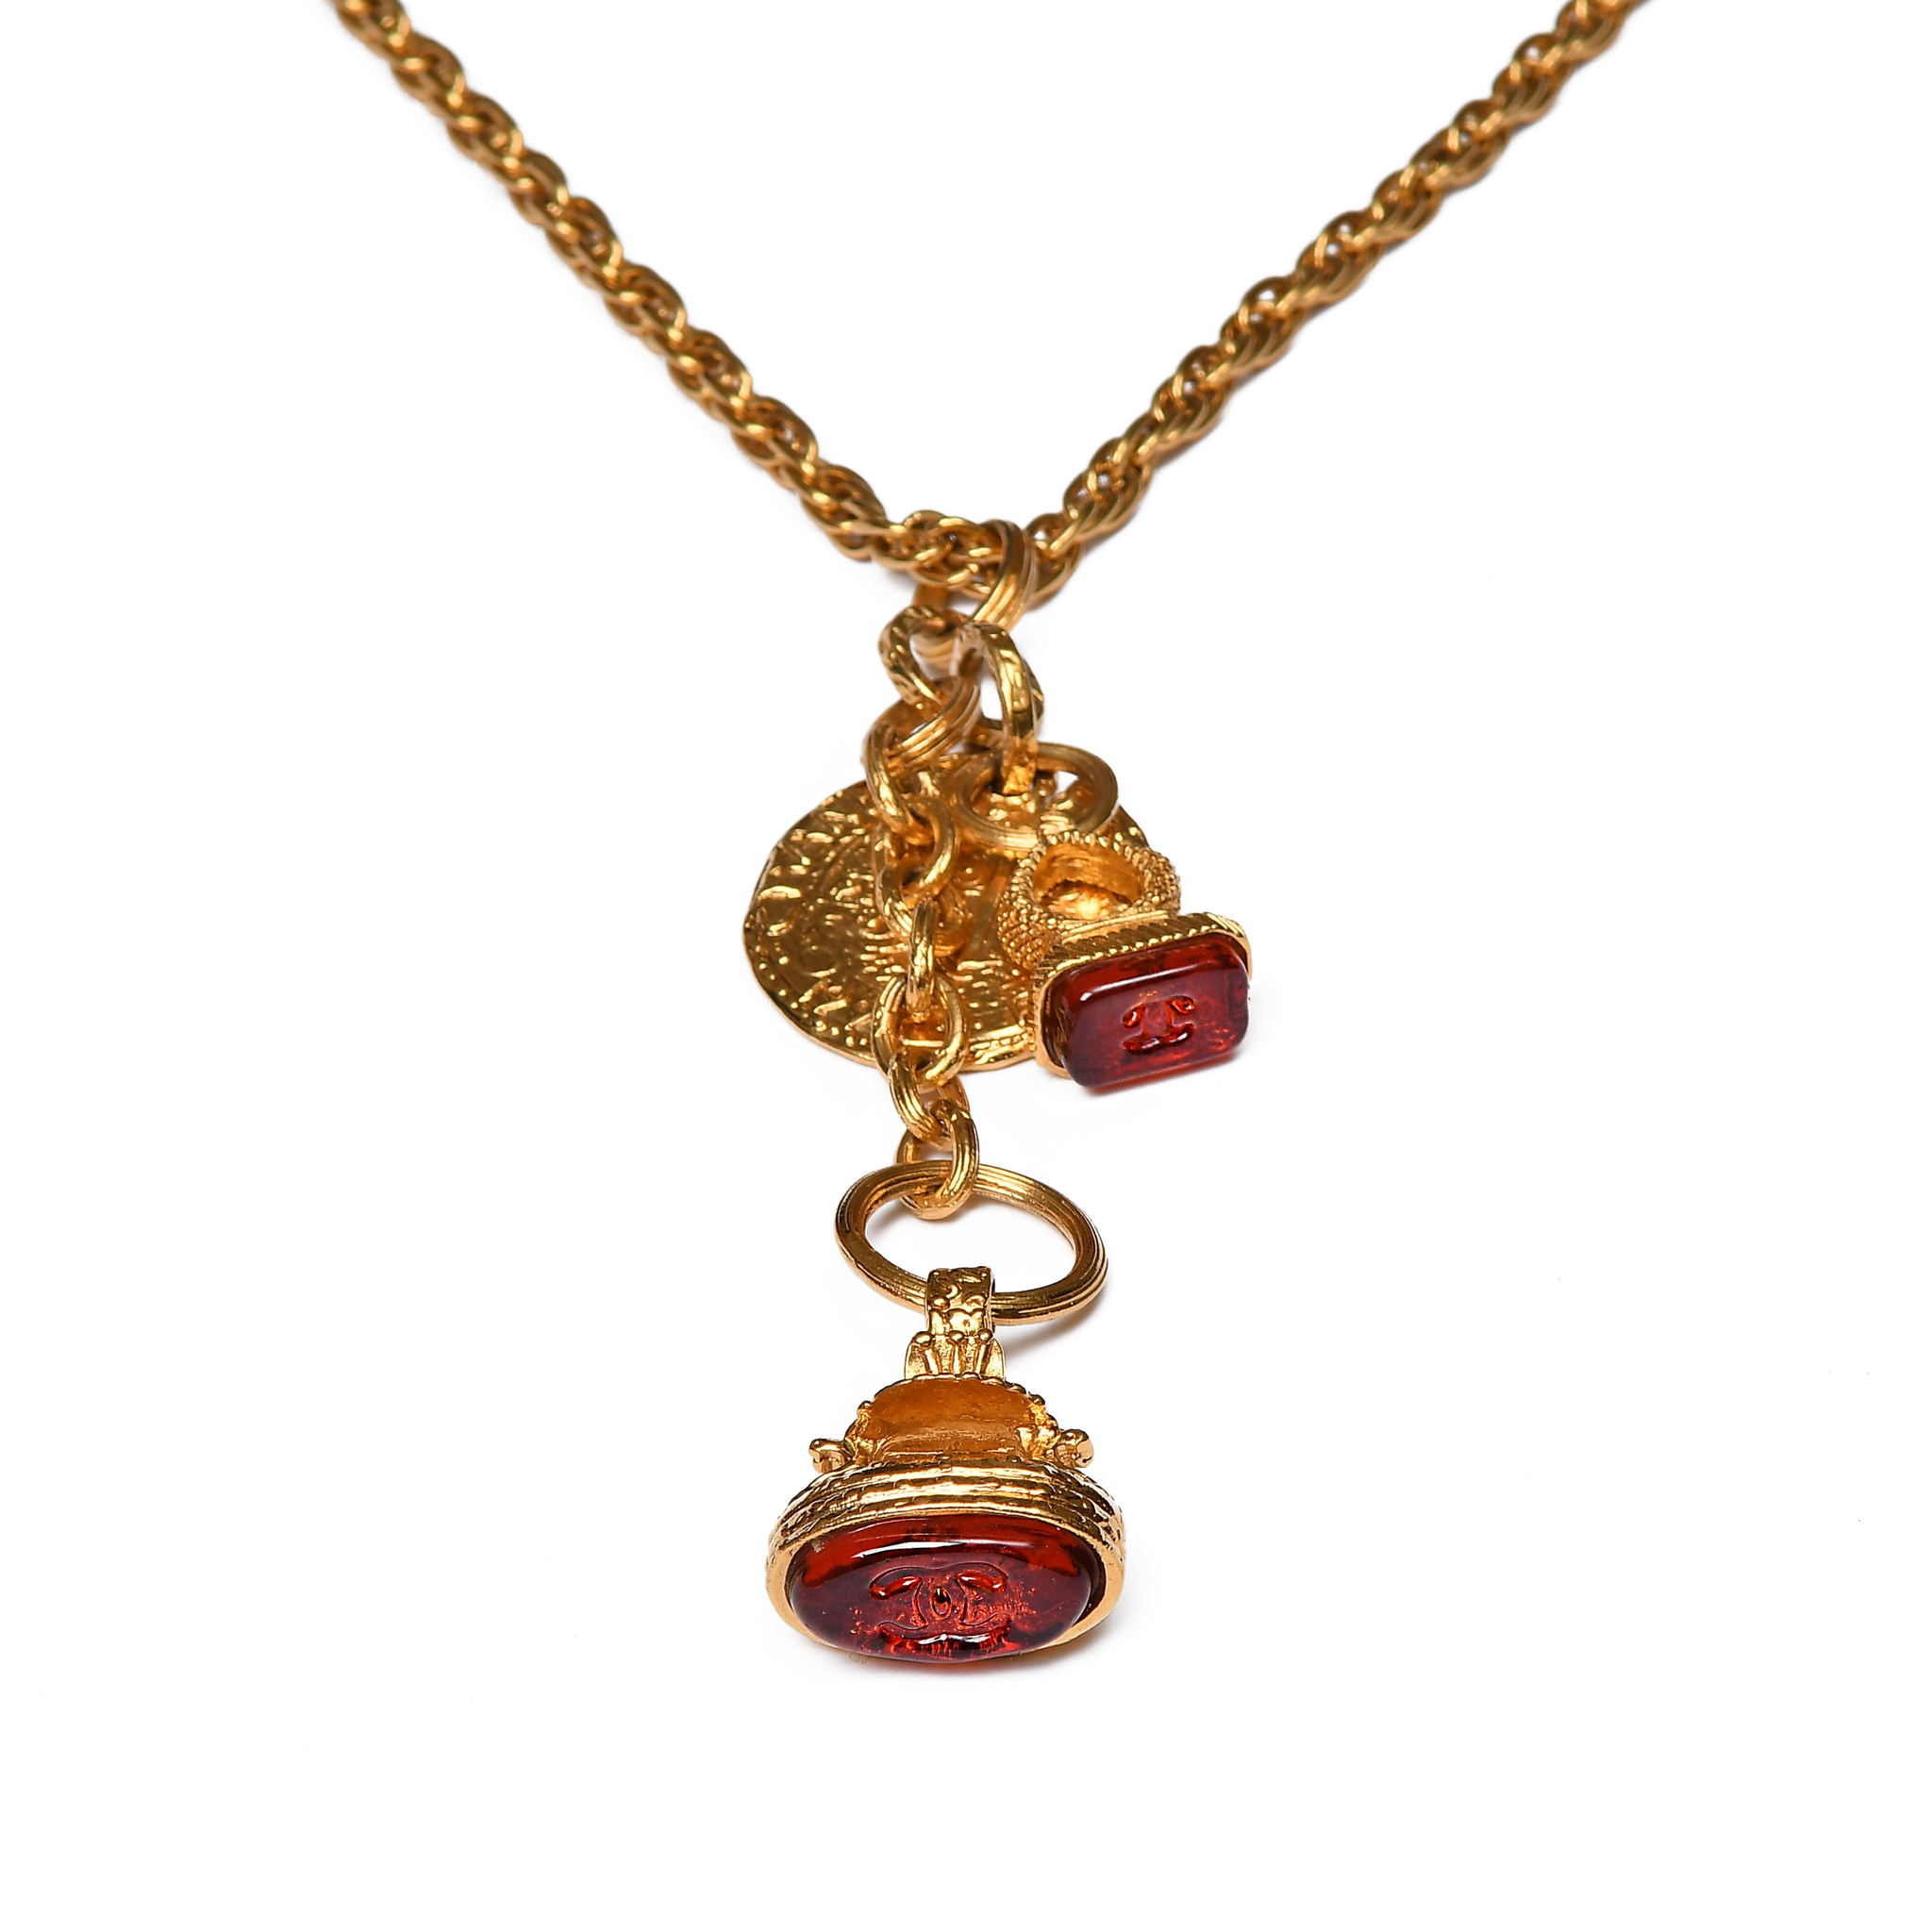 Luxurious long chain necklace with three pendants, two of which are shaped as seals, with Gripoix glass